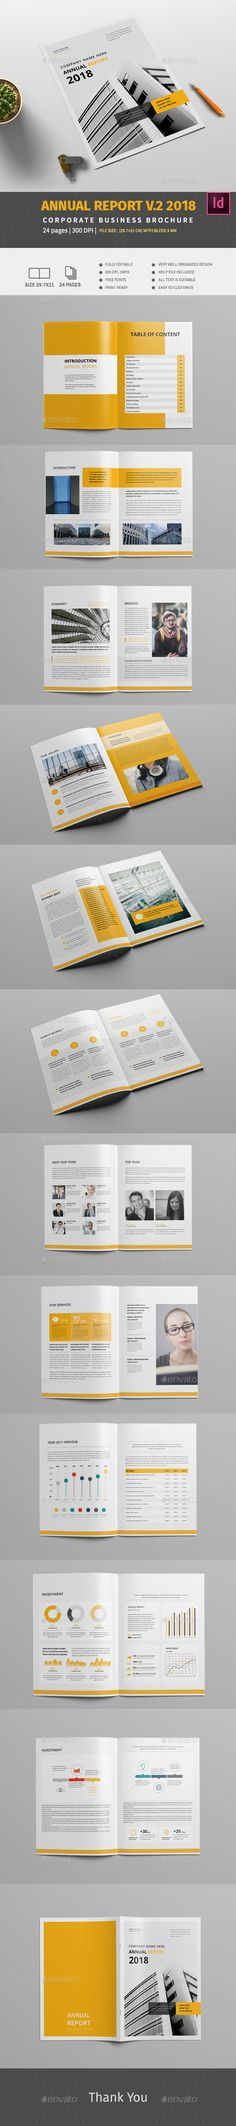 Annual Report V.2 2018 — InDesign INDD #clean #identity • Download ➝ https://graphicriver.net/item/annual-report-v2-2018/20085842?ref=pxcr